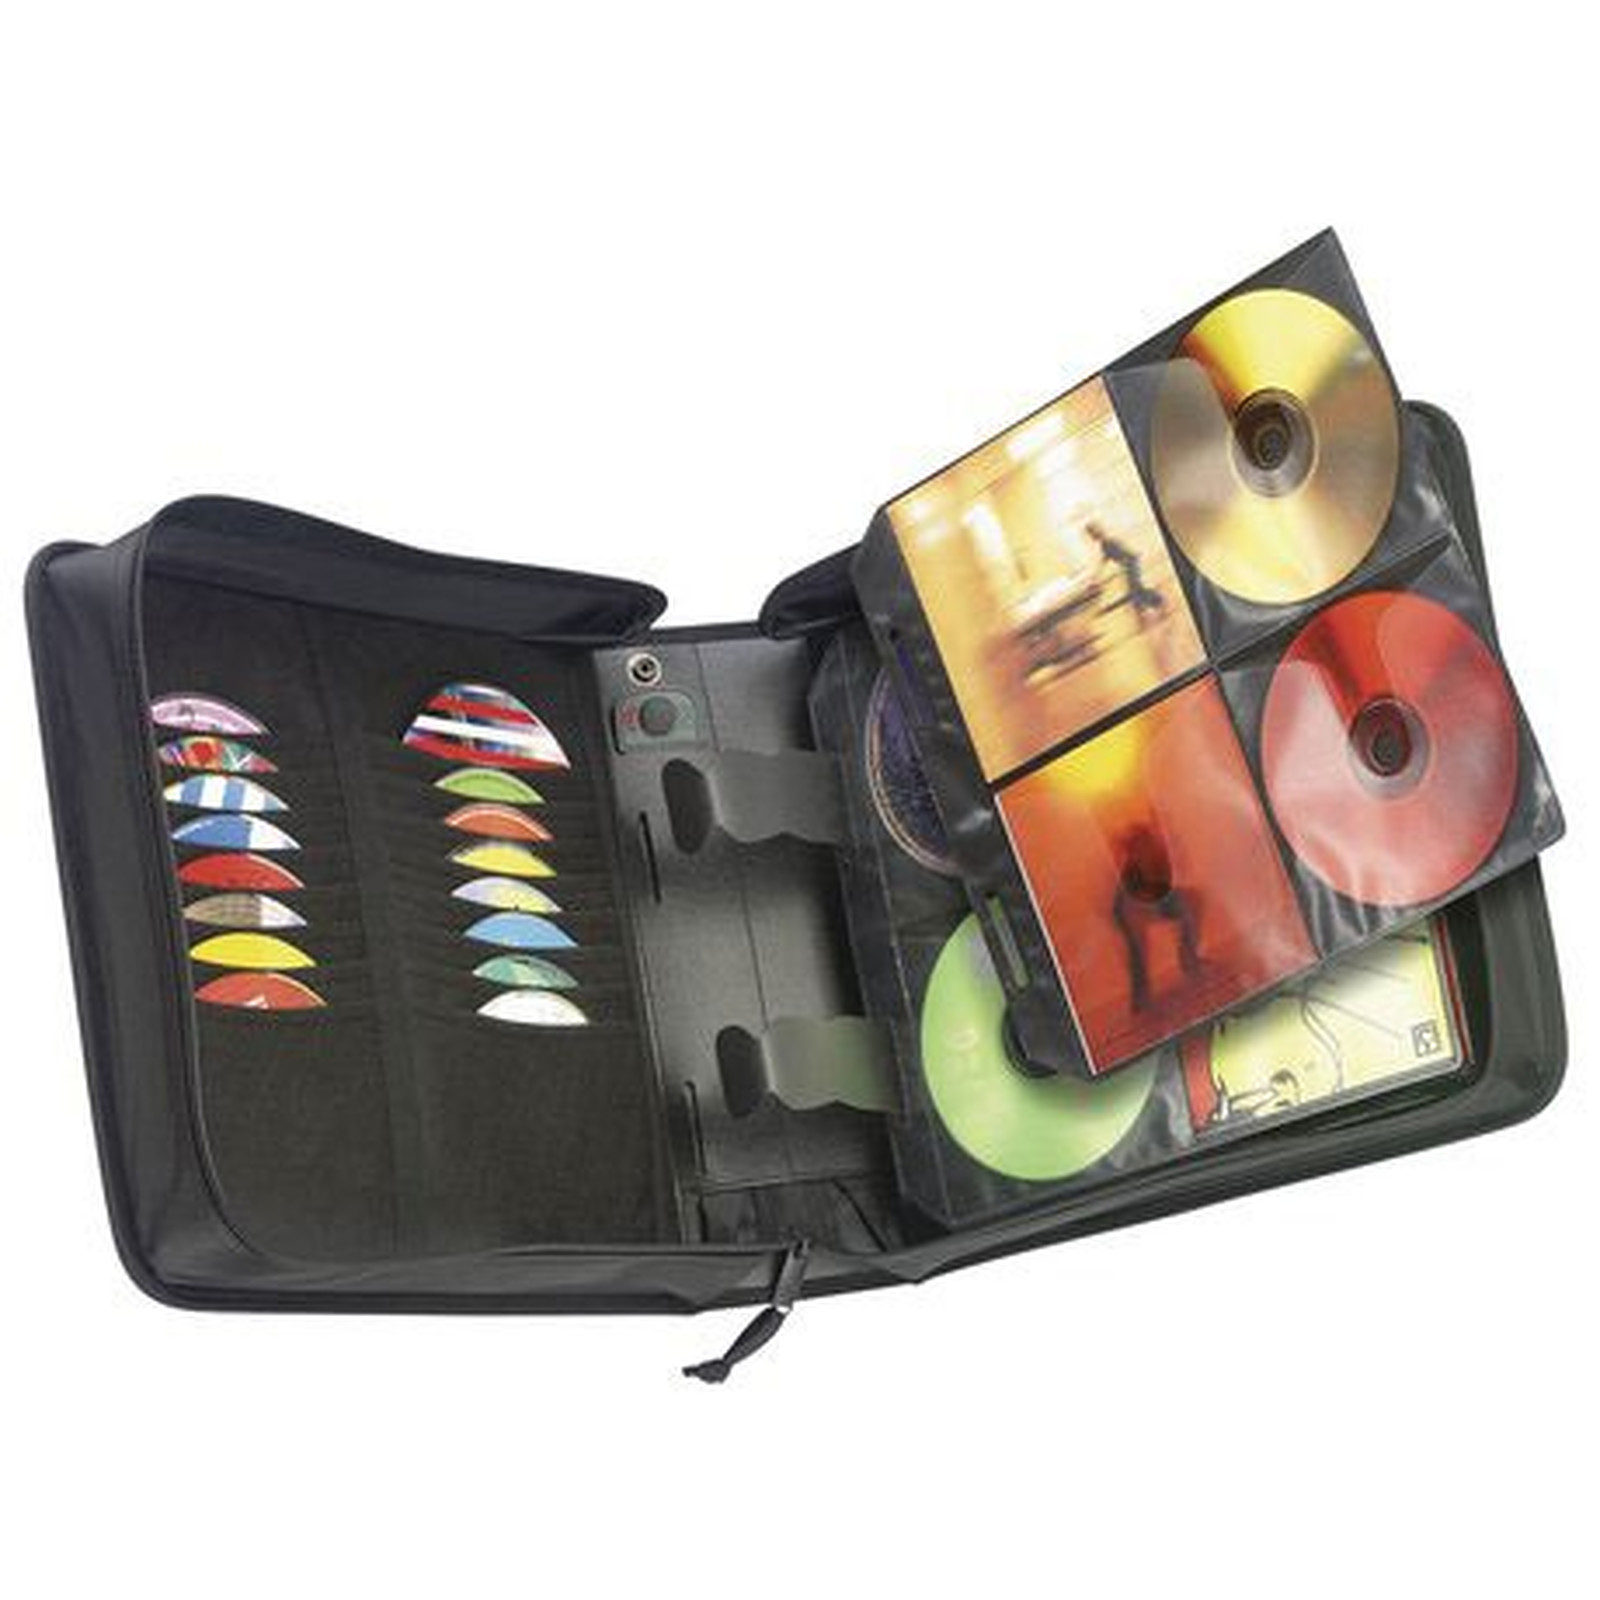 Rangements Cd Dvd Case Logic Cdw 320